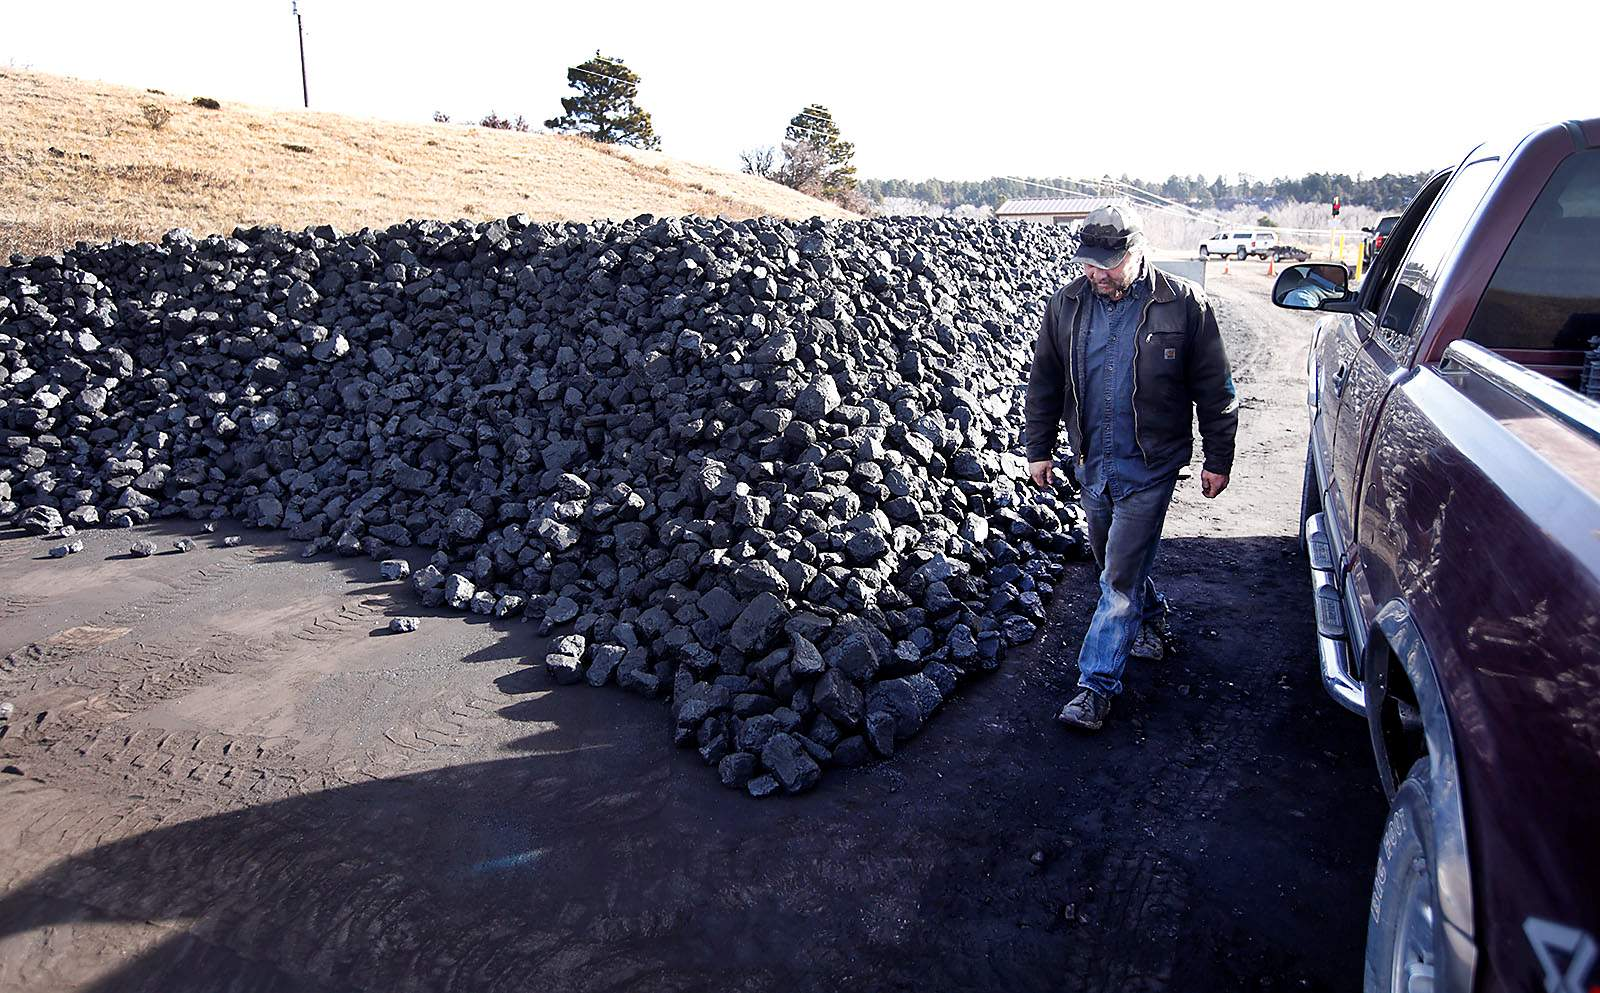 For warmth, some households still burn coal